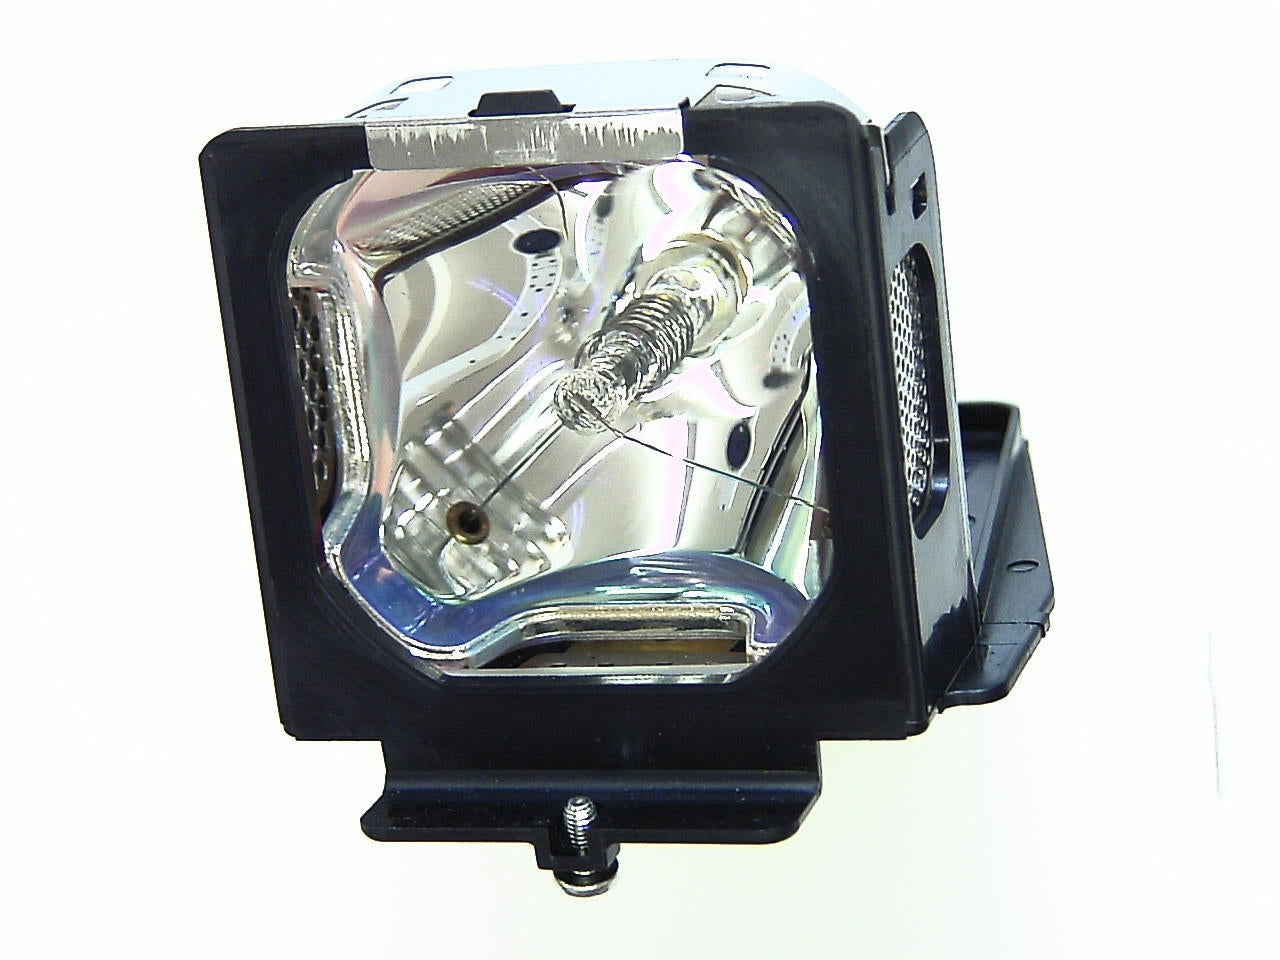 Sanyo 610-307-7925 Projector Lamp